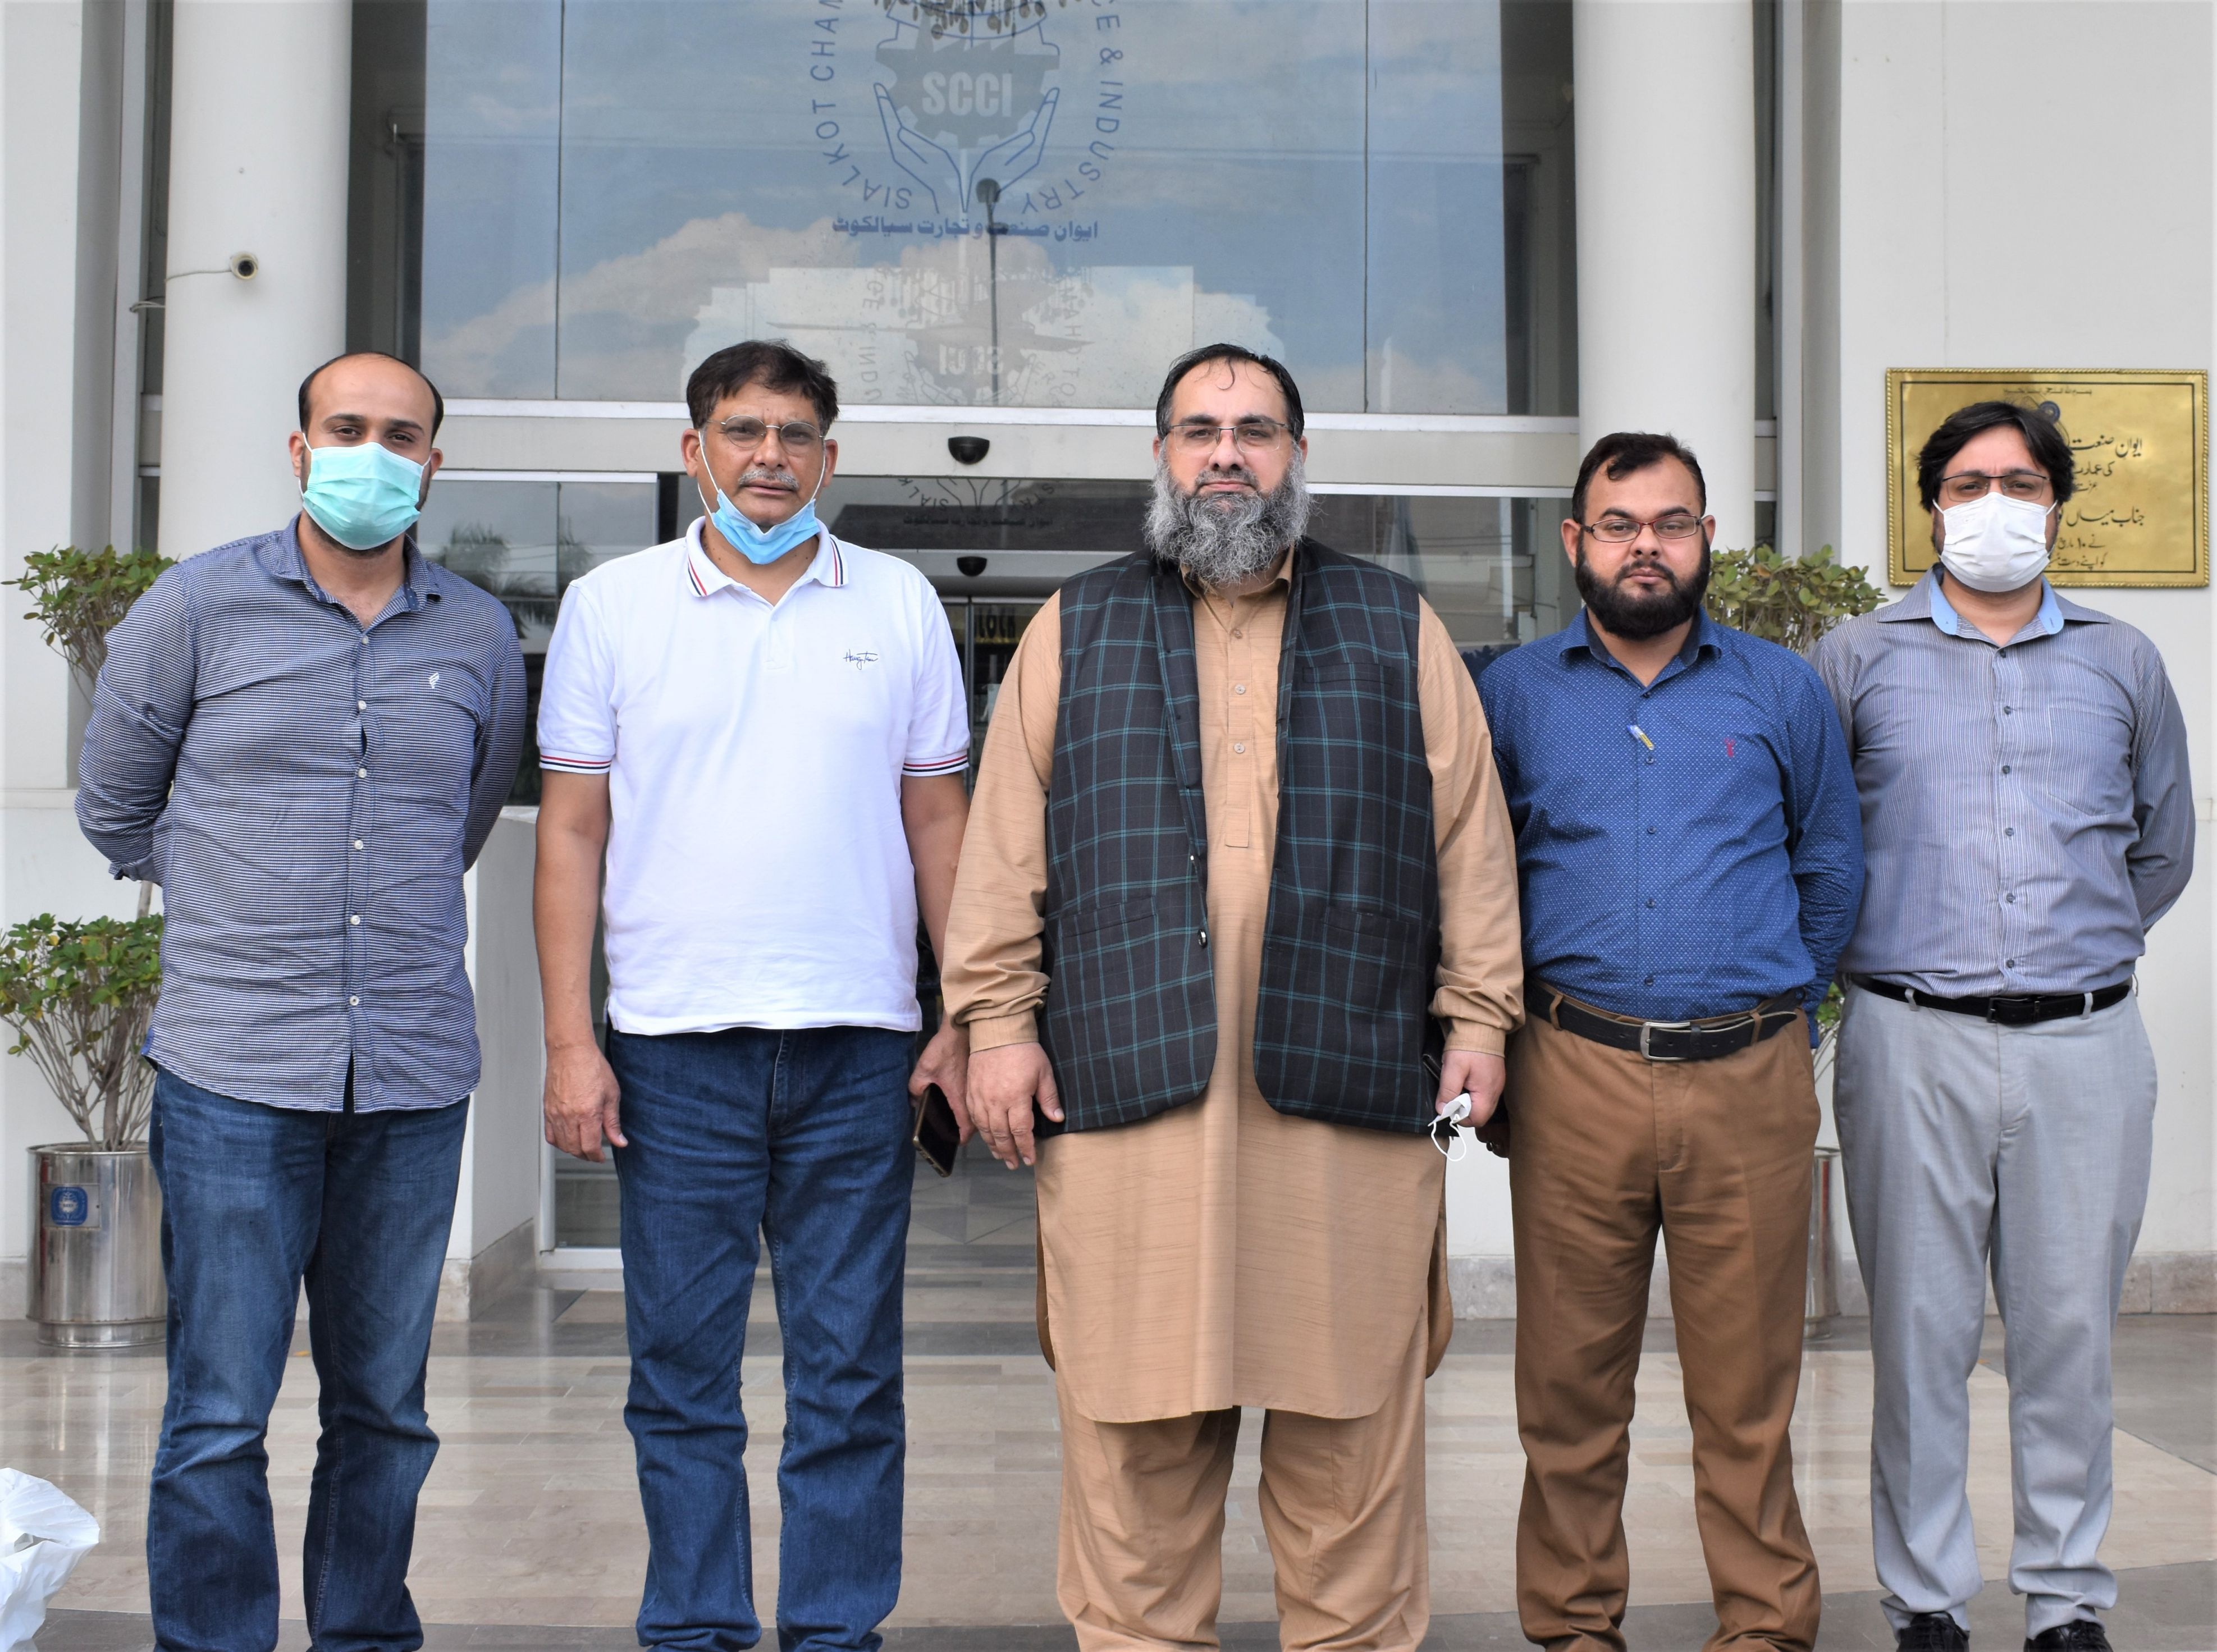 On September 9, 2021, Mr. Khuram Aslam, Senior Vice President and Mr. Ansar Aziz Puri, Vice President, Sialkot Chamber of Commerce & Industry had a meeting with Dr. Afzal Bhalli District Health Officer, Sialkot, to have a discussion on the initiation of a Counter of Booster shots at SCCI. It may be informed that the facility of Booster shots will be available to members that are planning to travel abroad. The health Office Sialkot has informed as per as NCOC guidelines that only those who have taken (1st or 2nd dose) of Chinese Vaccines (1 month elapsed already) can take the booster shot subject to provision of the following documents: 1. PAID CHALLAN (TO PAID WITHIN NBP OF WORTH 1270/- PKR, ENCLOSED).  2. 1 COPY OF CNIC.  3. 1 COPY OF PASSPORT WITH VISA PAGE, IF AVAILABLE.  The interest members who are willing to take booster shots may submit the required documents and fill their details to E-Form of SCCI that will be provided shortly.